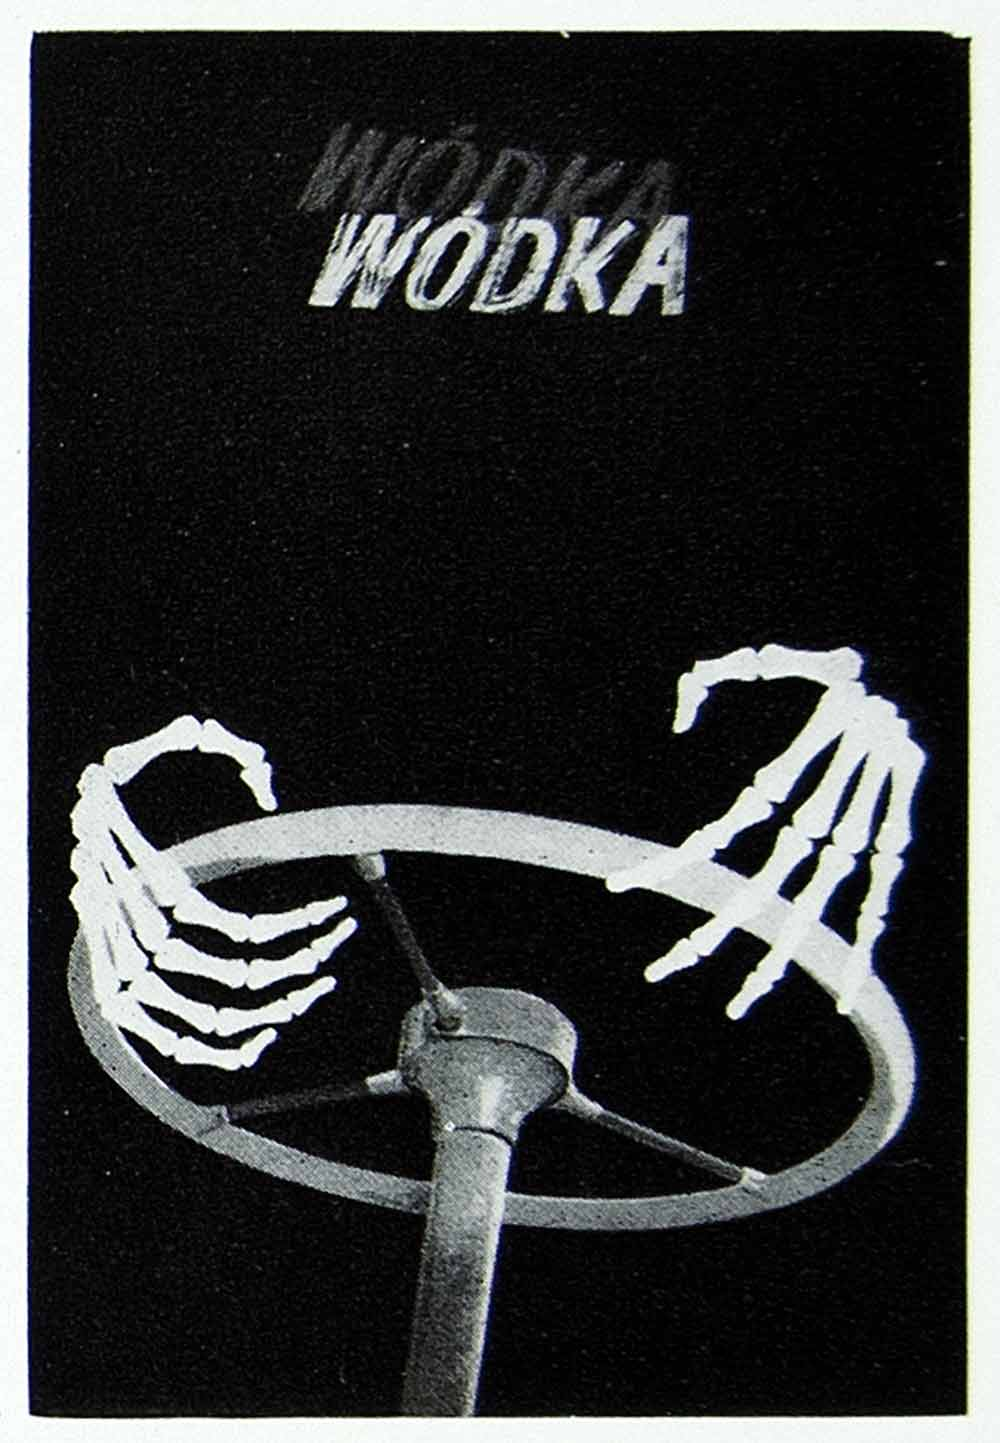 1957 Print Polish Advertising Poster Art Alcoholism Skeleton Hands Driving VENA1